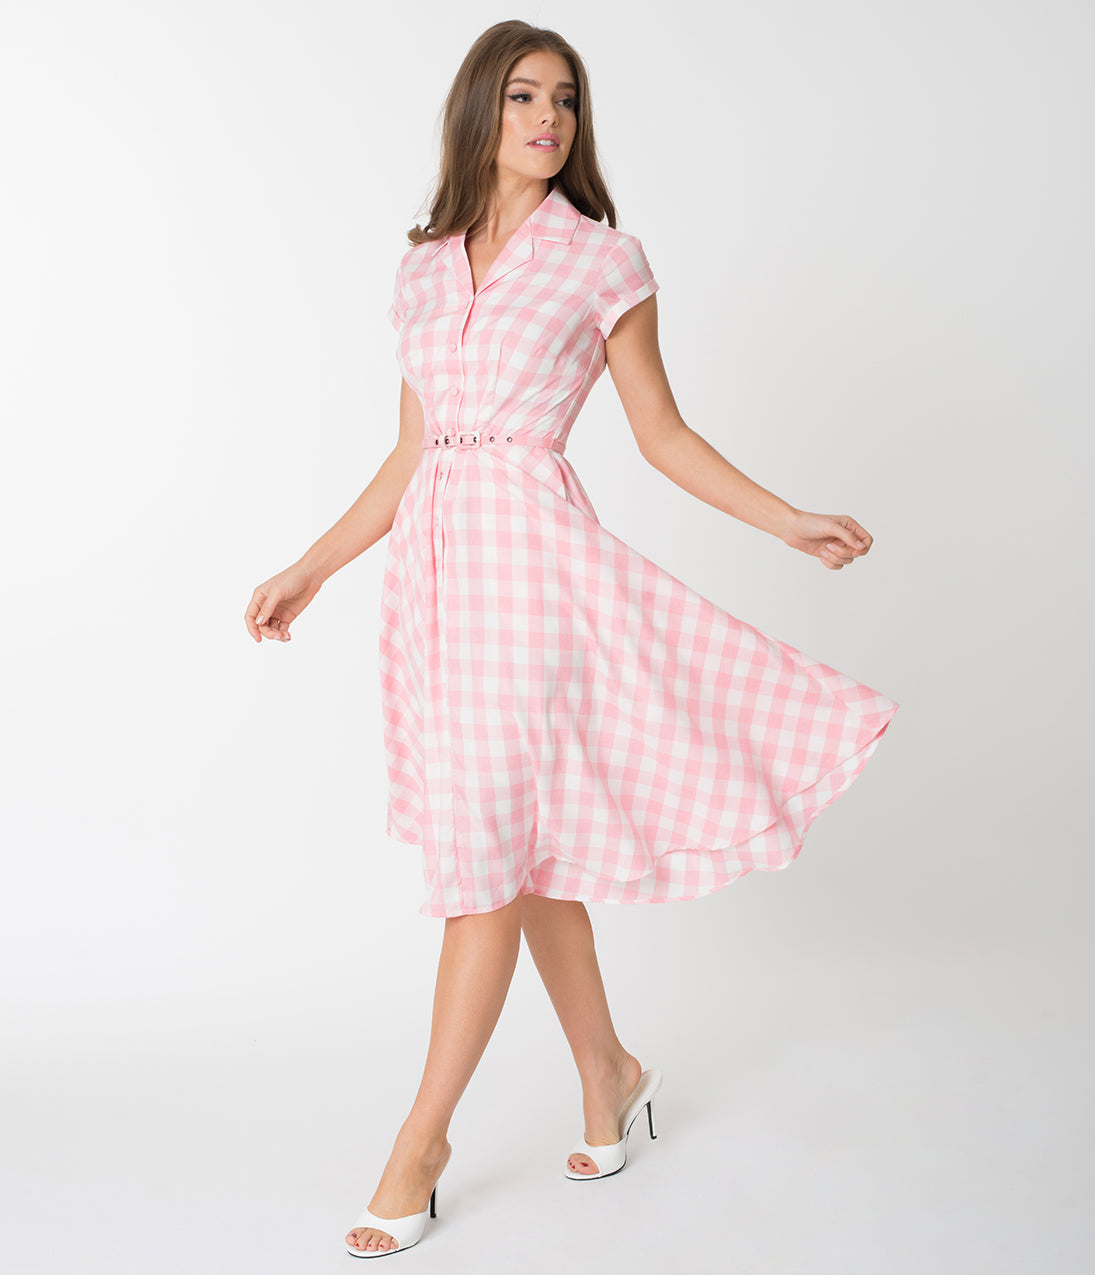 1960s Dresses | 60s Dresses Mod, Mini, Jakie O, Hippie Unique Vintage 1950S Style Light Pink  White Gingham Alexis Swing Dress $98.00 AT vintagedancer.com